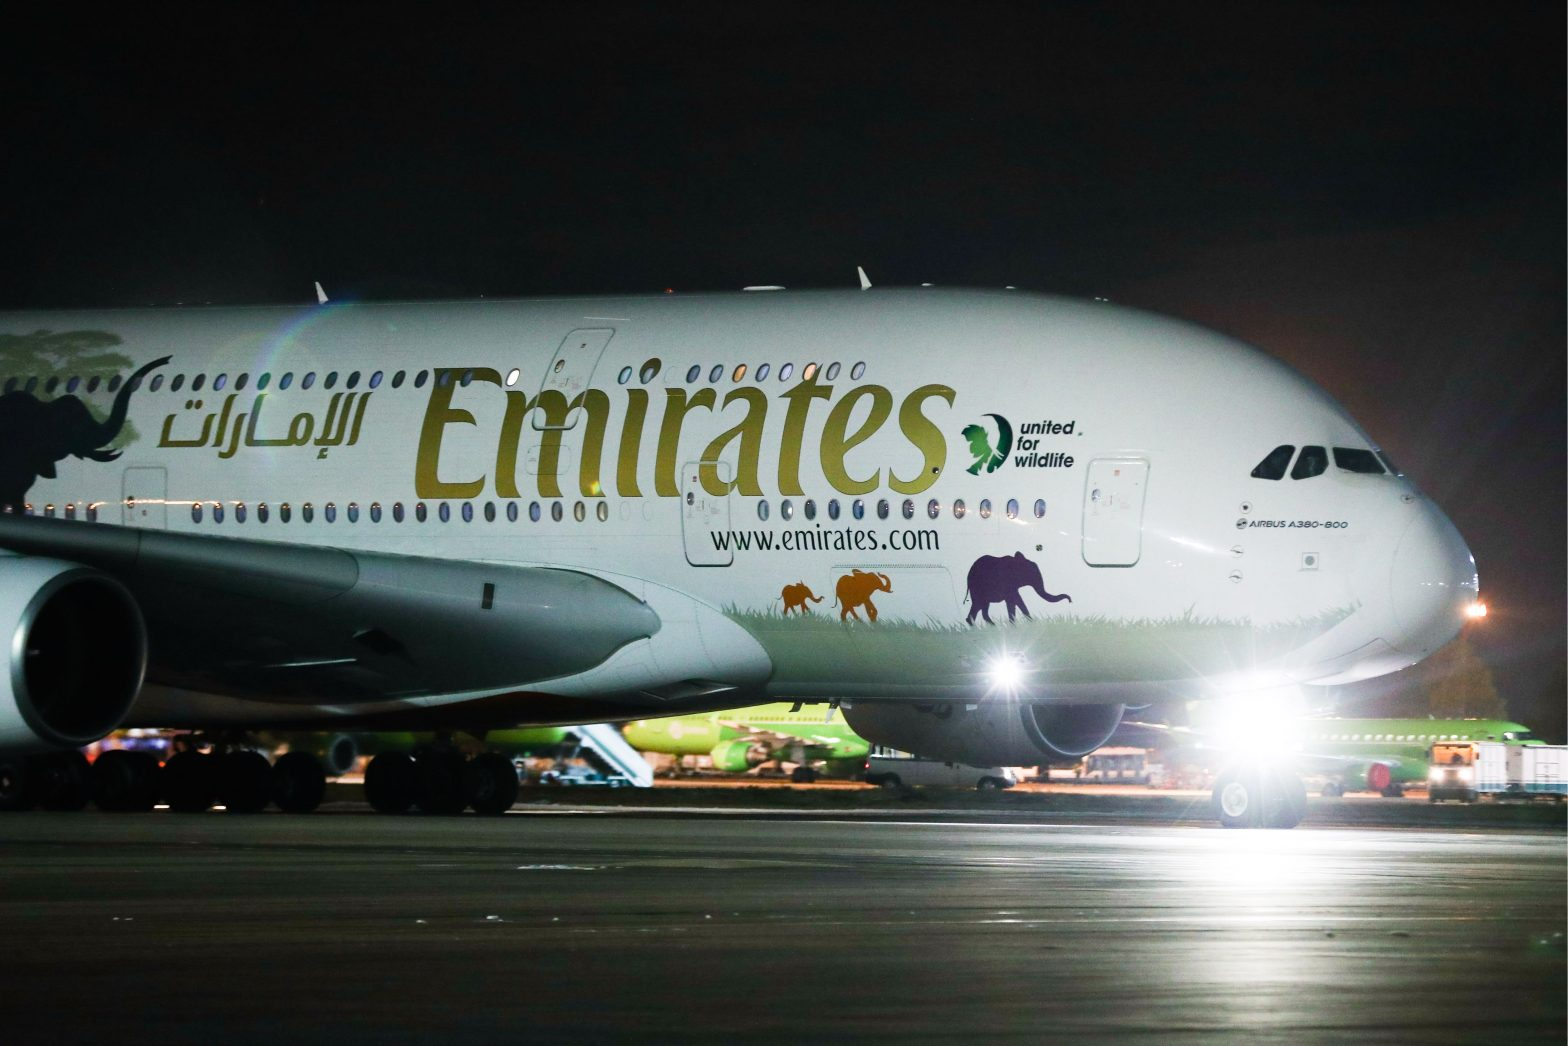 Emirates Airline to suspend all passenger operations by March 25 – CNBC